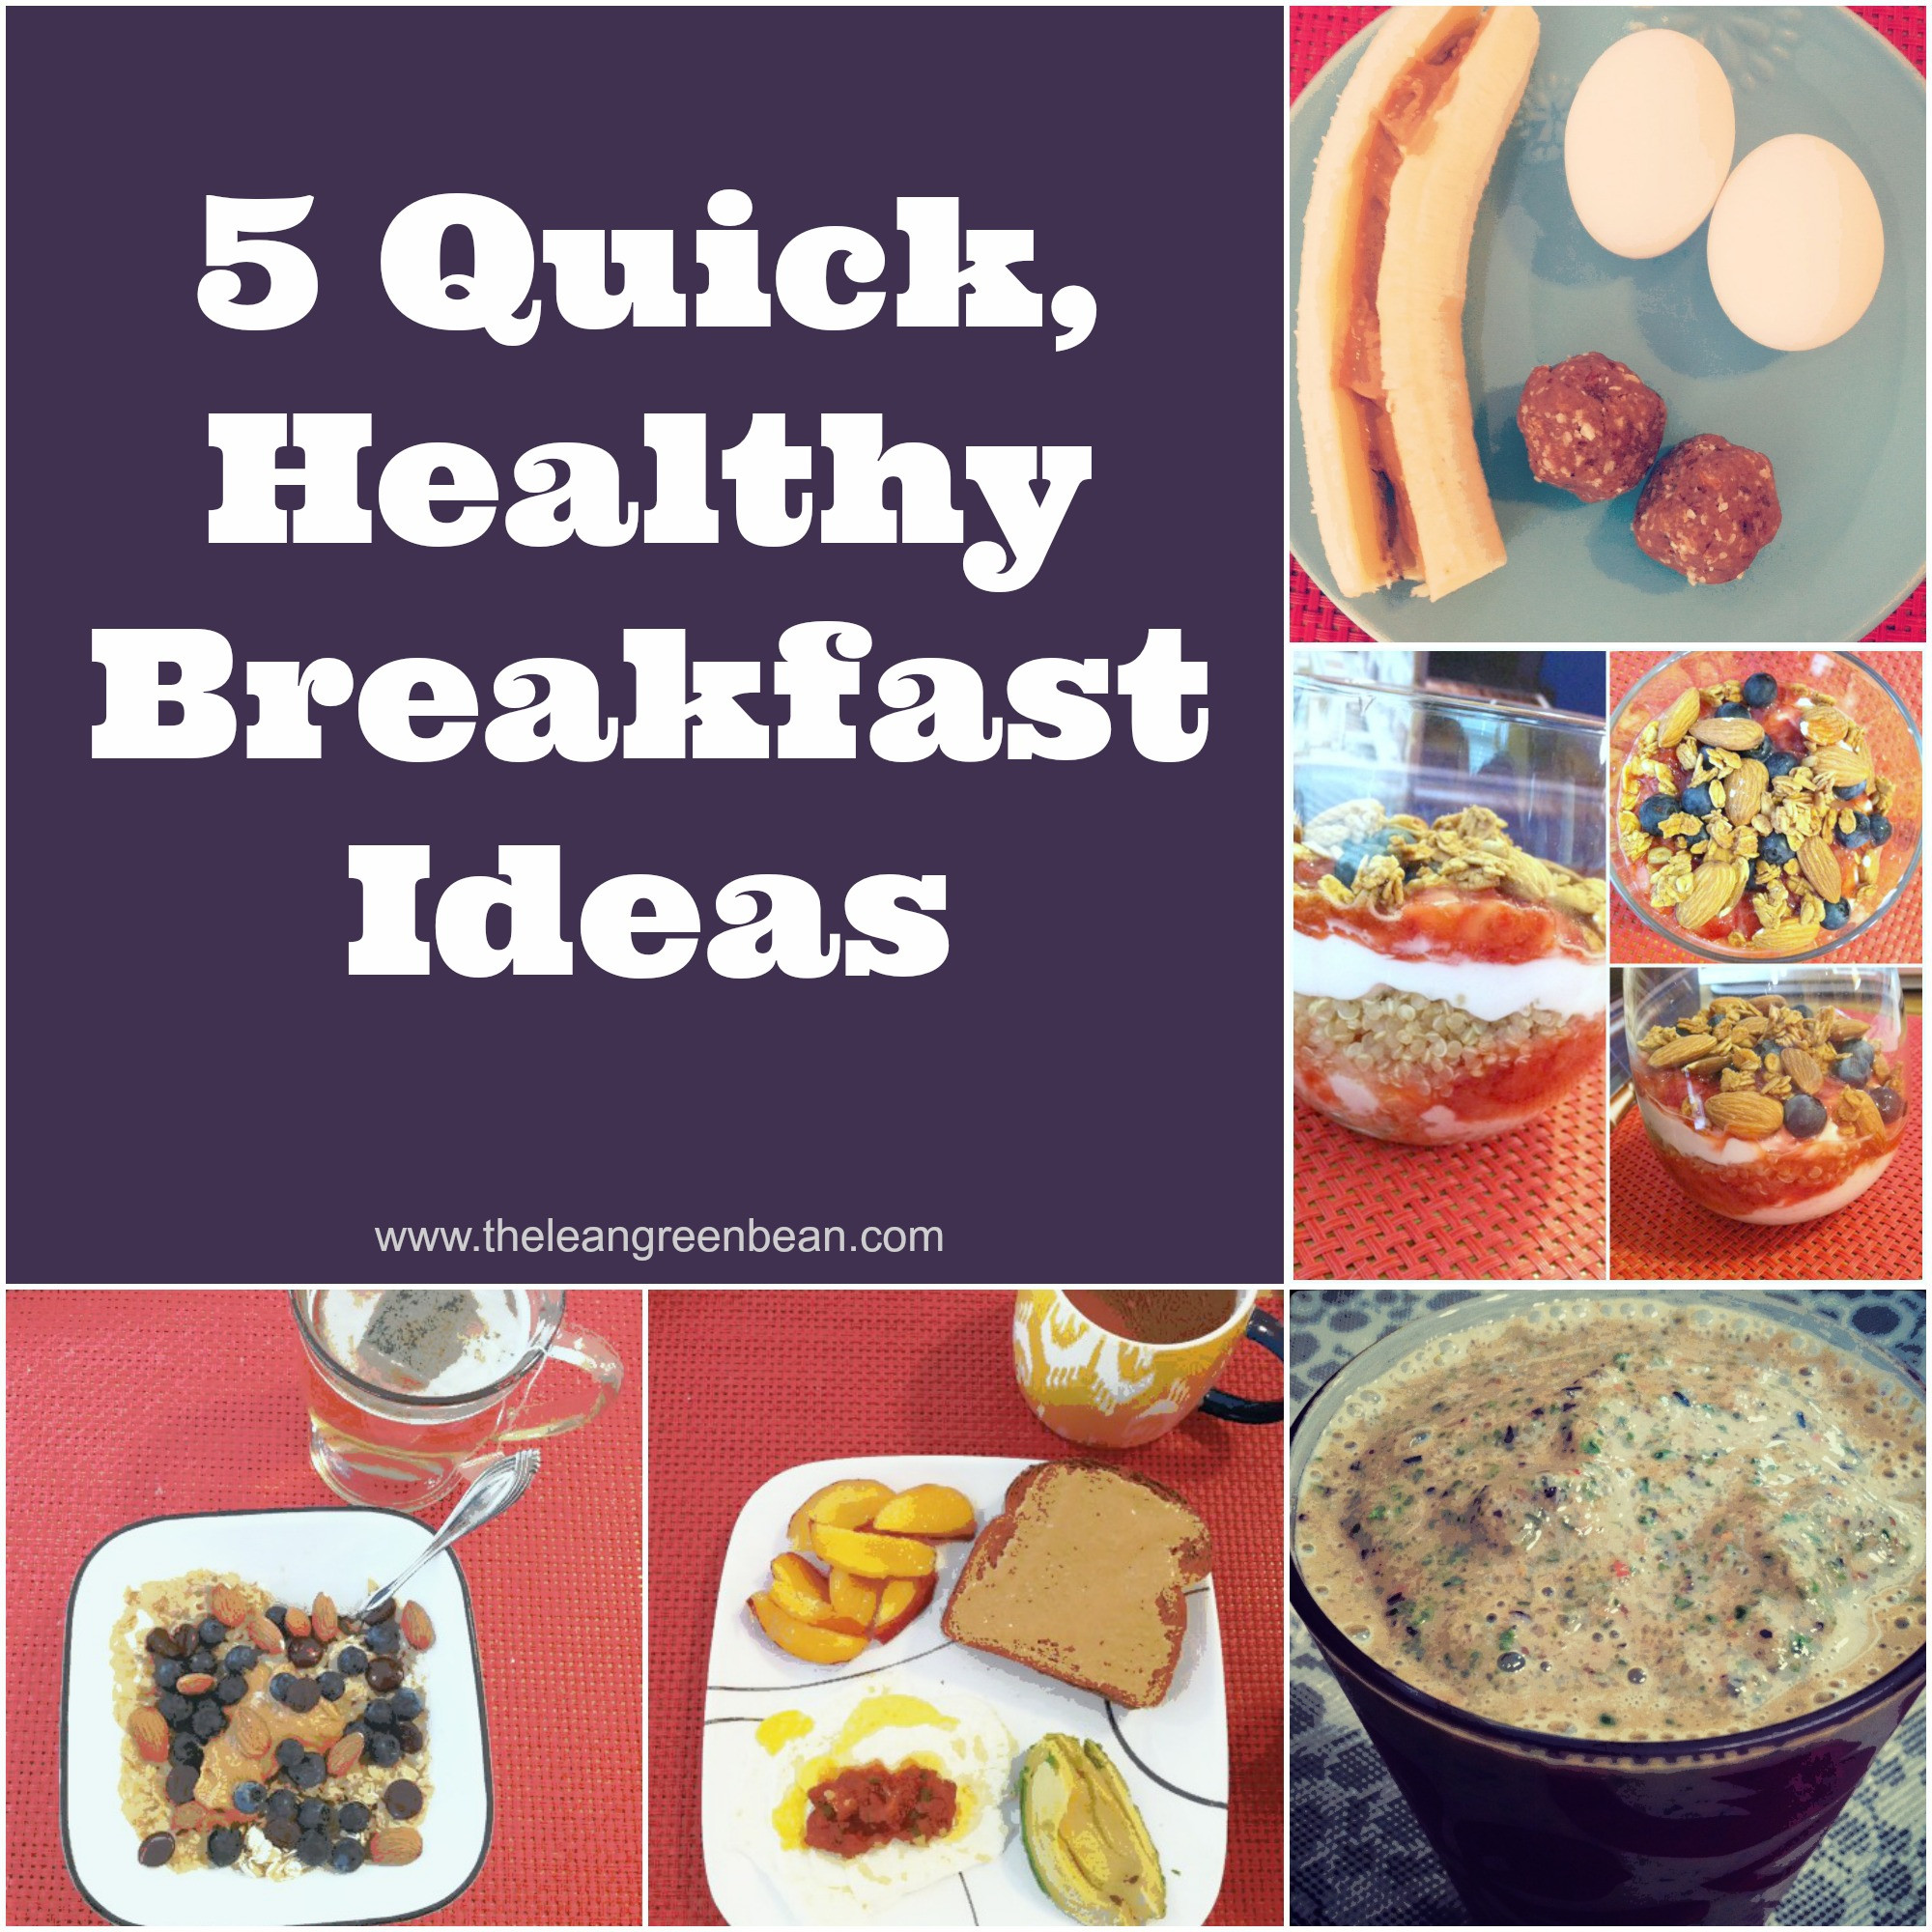 Easy Healthy Breakfast Ideas  5 Quick Healthy Breakfast Ideas from a Registered Dietitian